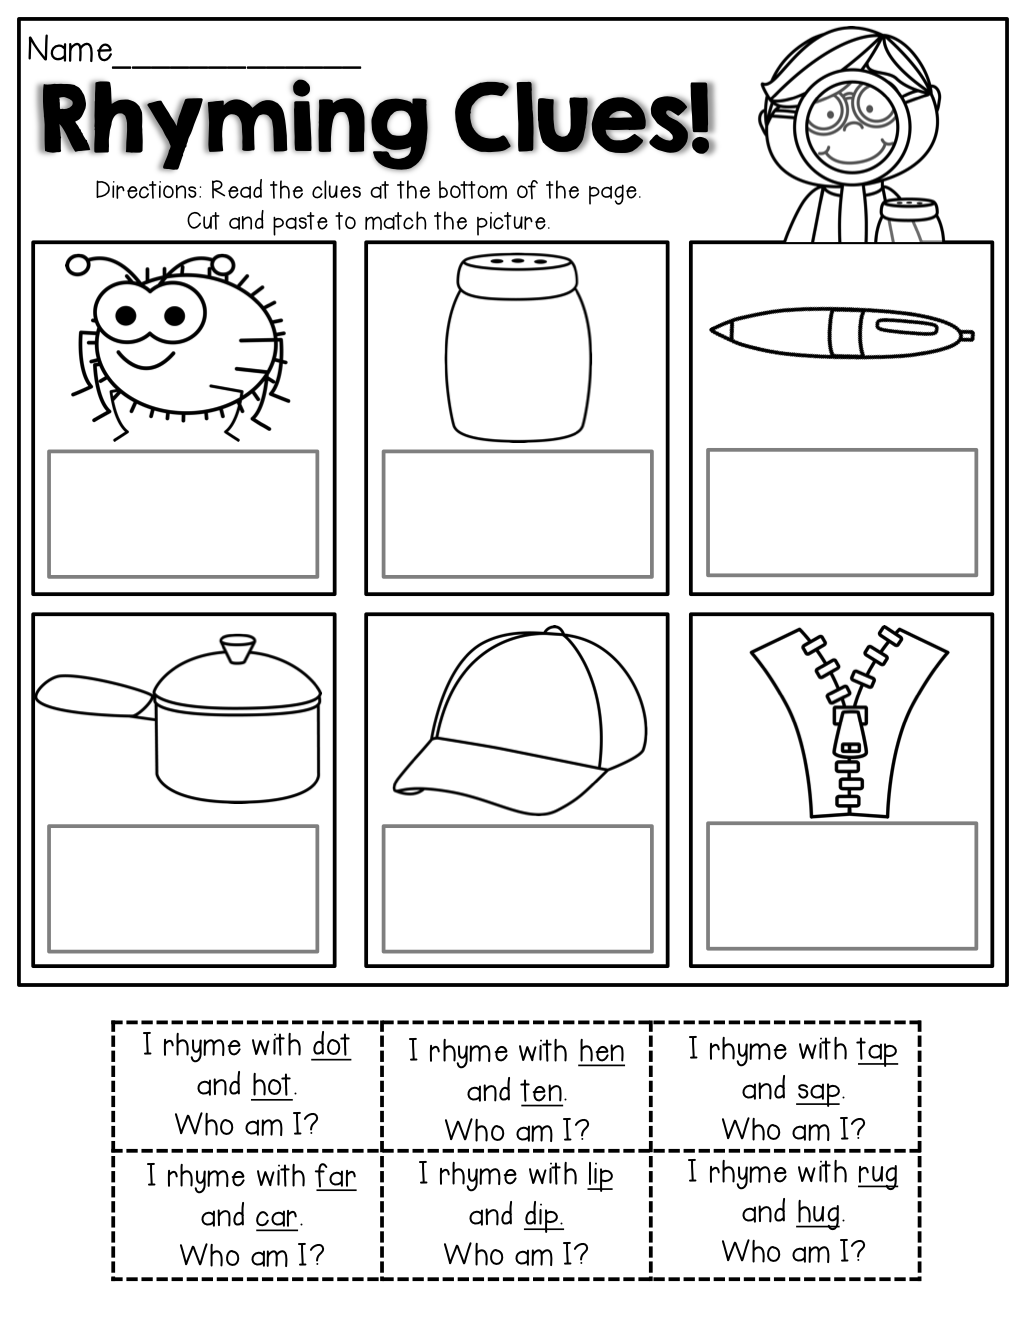 worksheet Worksheet Rhyming Words read the simple clues that have rhyming words match picture great for beginning